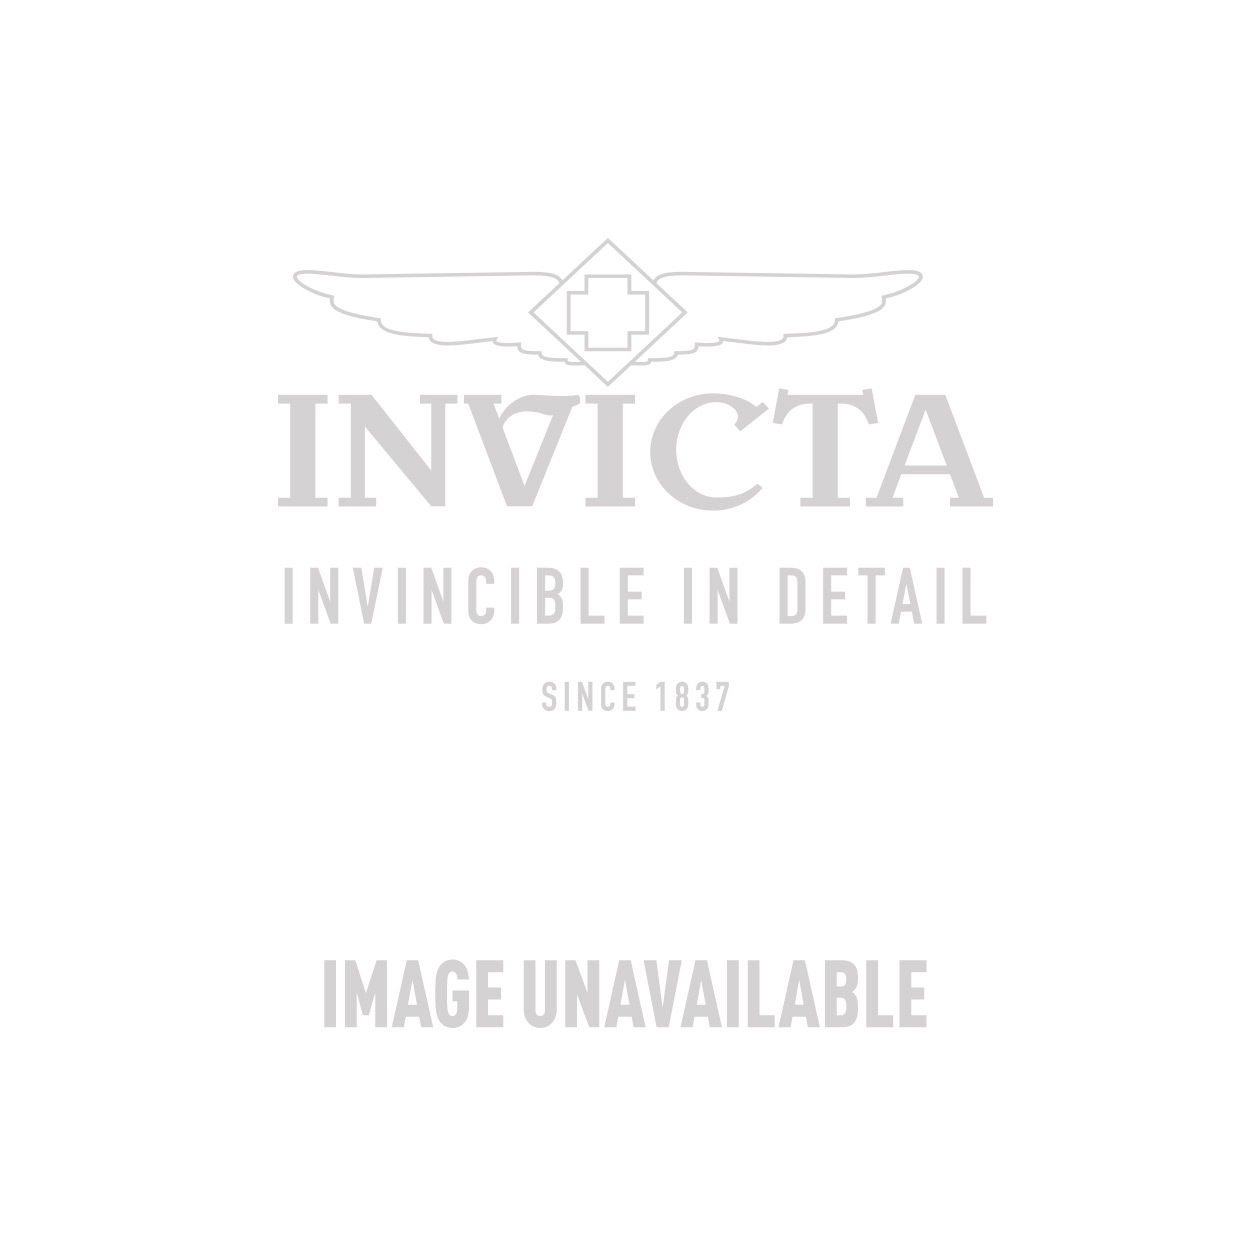 Invicta Vintage Mechanical Watch - Rose Gold case with Black tone Leather band - Model 12407